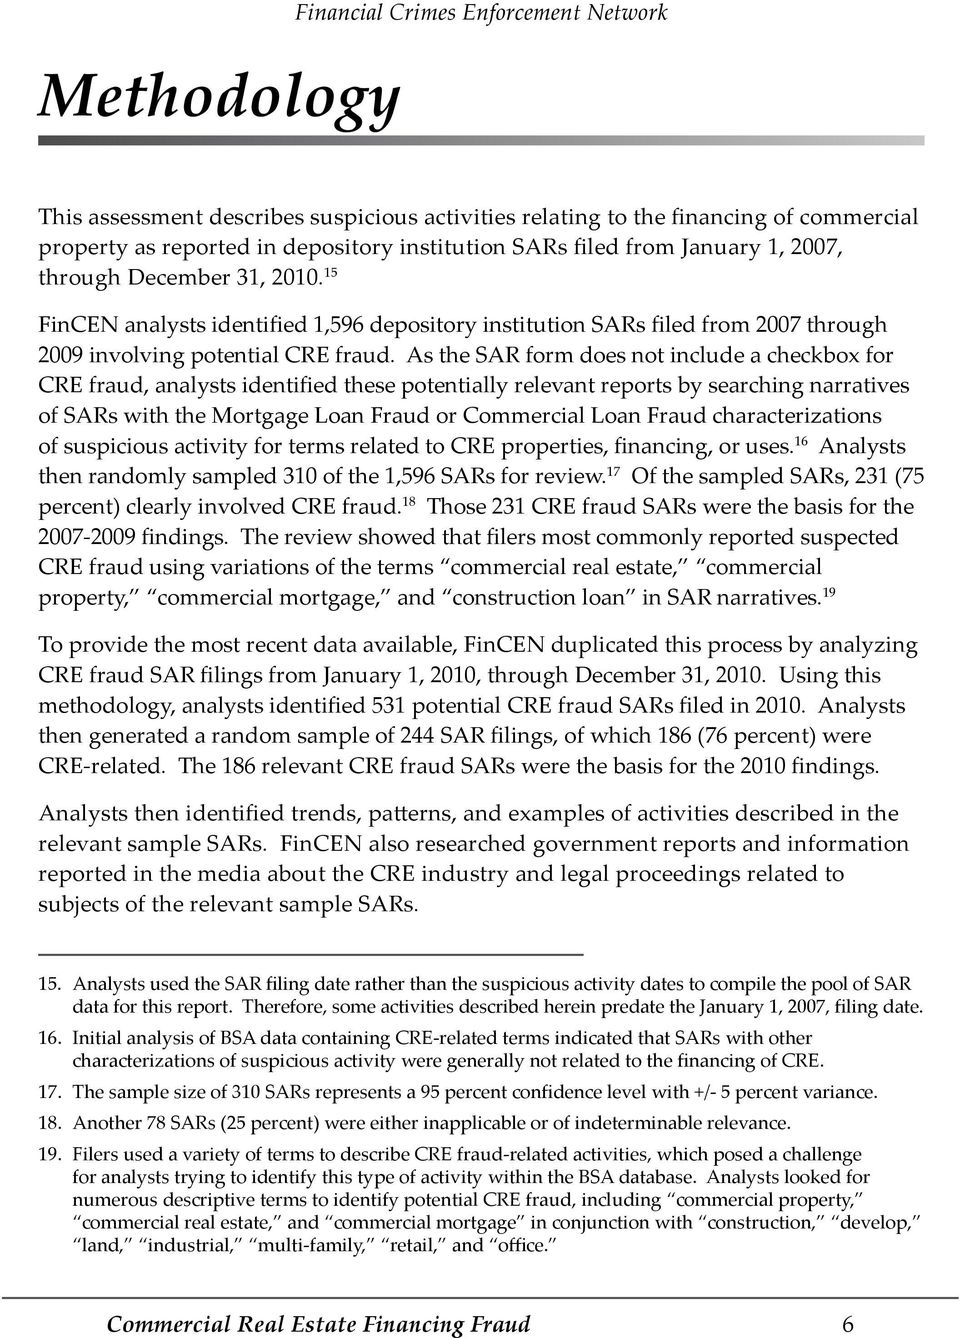 As the SAR form does not include a checkbox for CRE fraud, analysts identified these potentially relevant reports by searching narratives of SARs with the Mortgage Loan Fraud or Commercial Loan Fraud